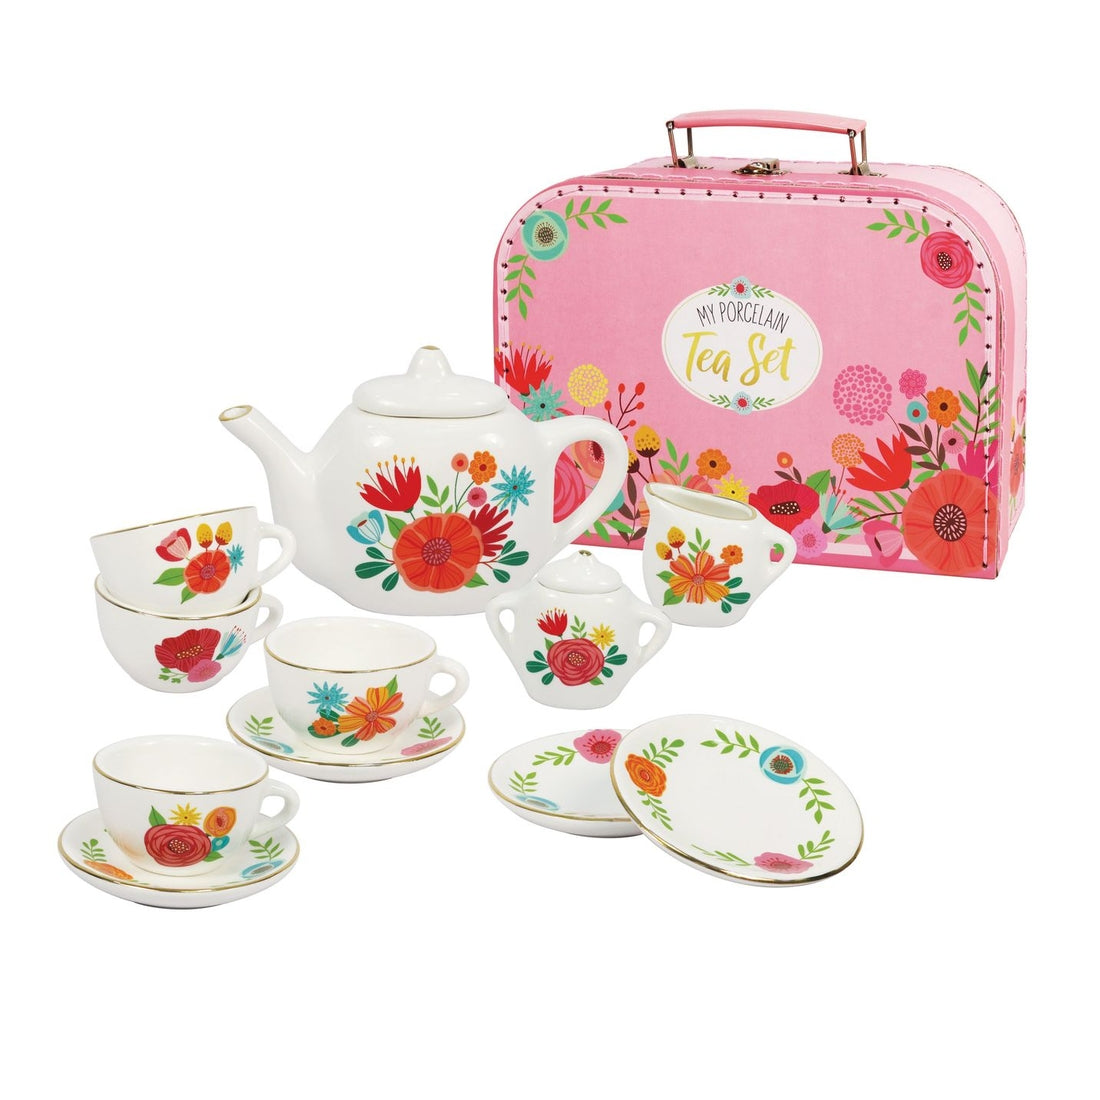 My Porcelain Tea Set w/Carry Case